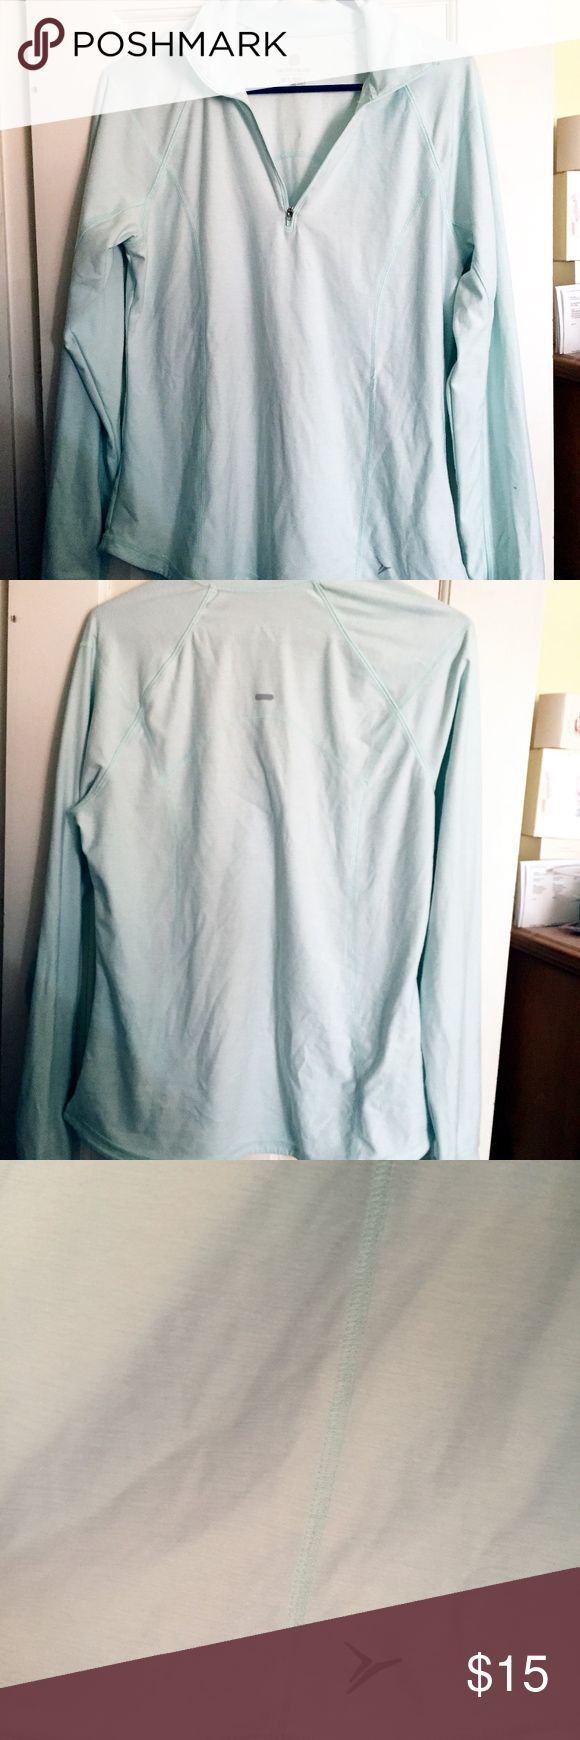 NWOT Old Navy Active Fit Tiffany Blue 1/4 Zip NWOT Old Navy Active Fit Tiffany Blue 1/4 Zip  Semi-litted, long sleeved, size large women's thin active pullover top. Features thumb holes and a small reflective logo (pictured). Received as a gift and did did not like how loose it is on me.  No signs of damage or wear, but it has been washed. Perfect to wear to the gym over a tshirt in cooler months or for outdoor activitiy.   RN# 54023 CA# 17897 Old Navy Tops